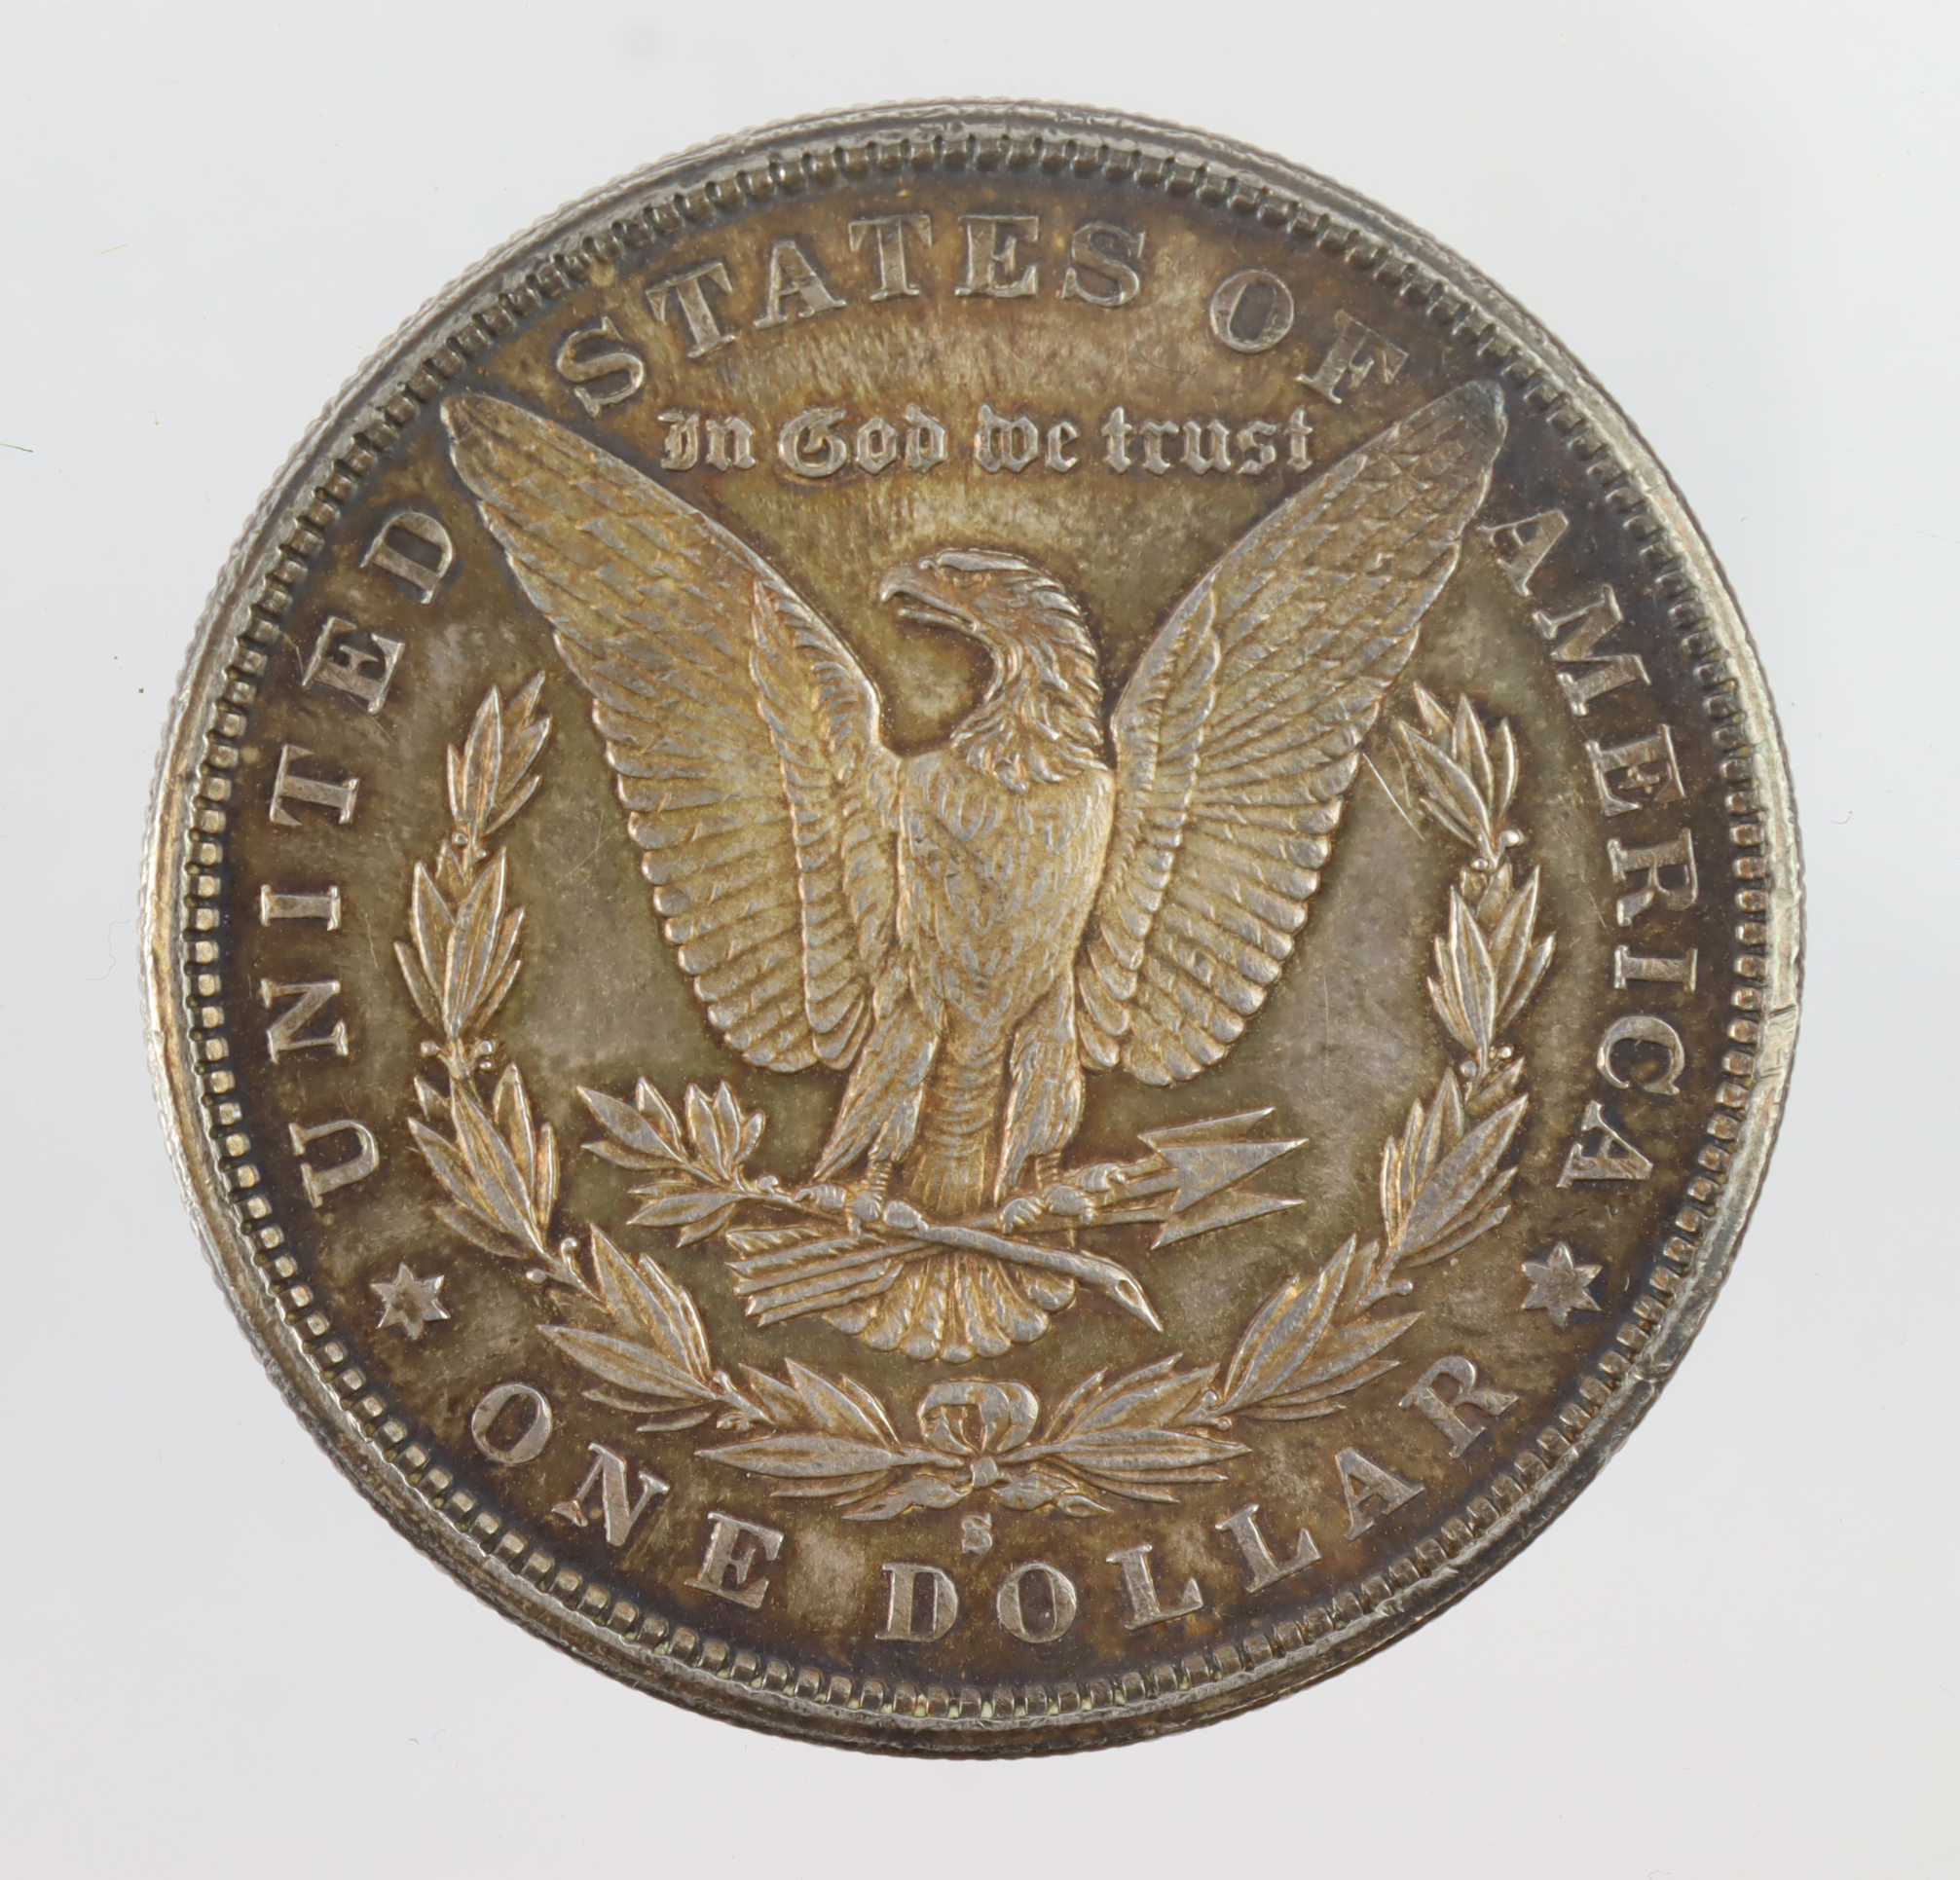 USA Morgan Silver Dollar 1881S, toned UNC, small scratch. - Image 2 of 2